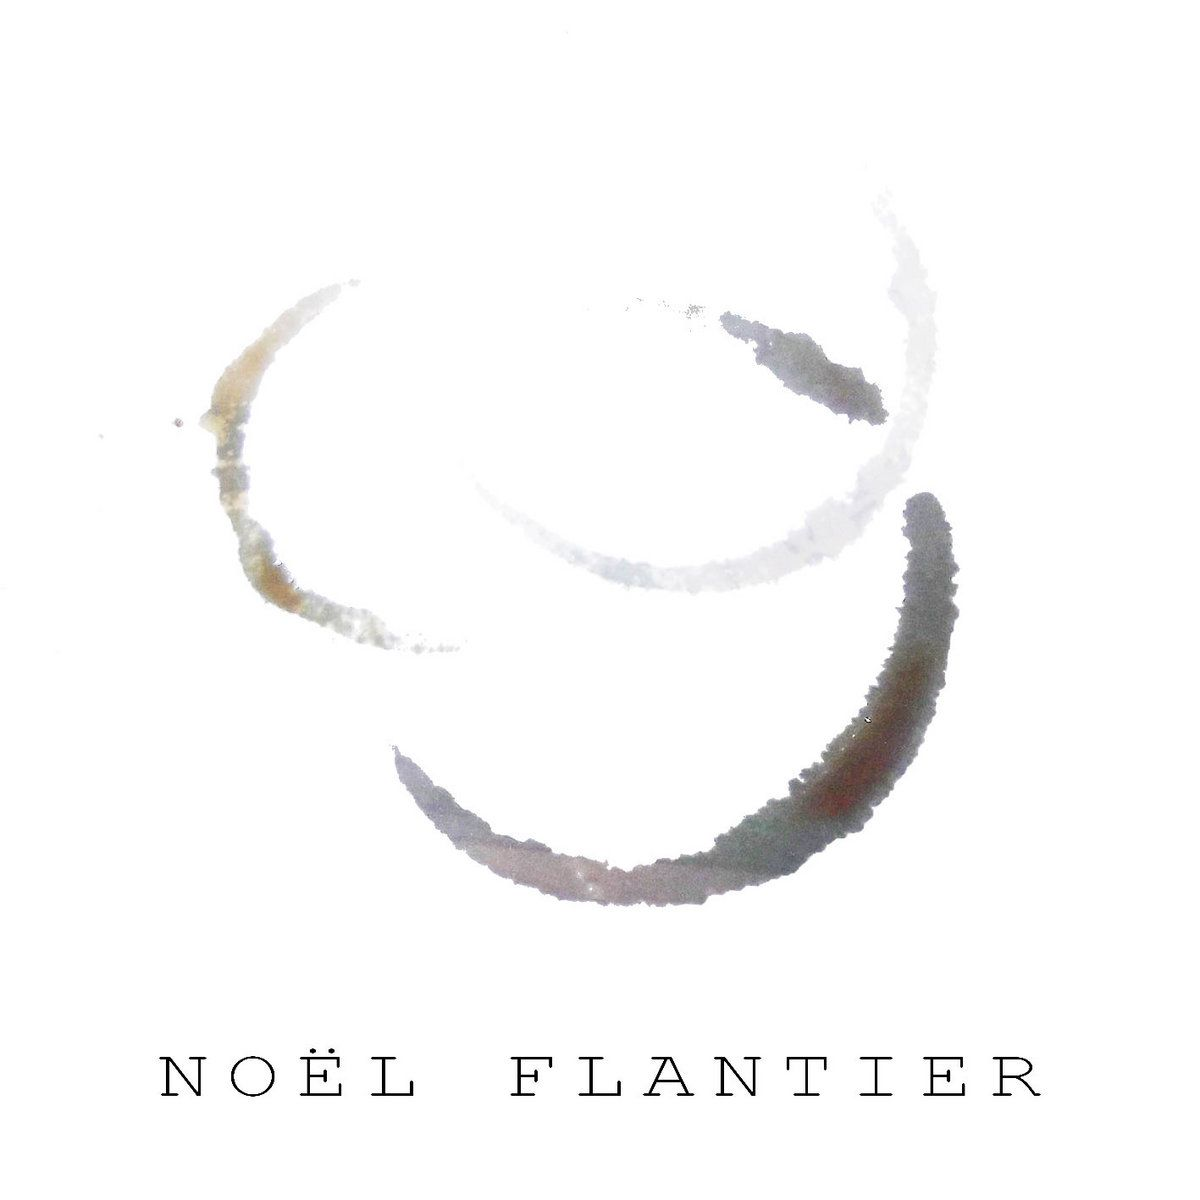 [INTERVIEW] NOËL FLANTIER